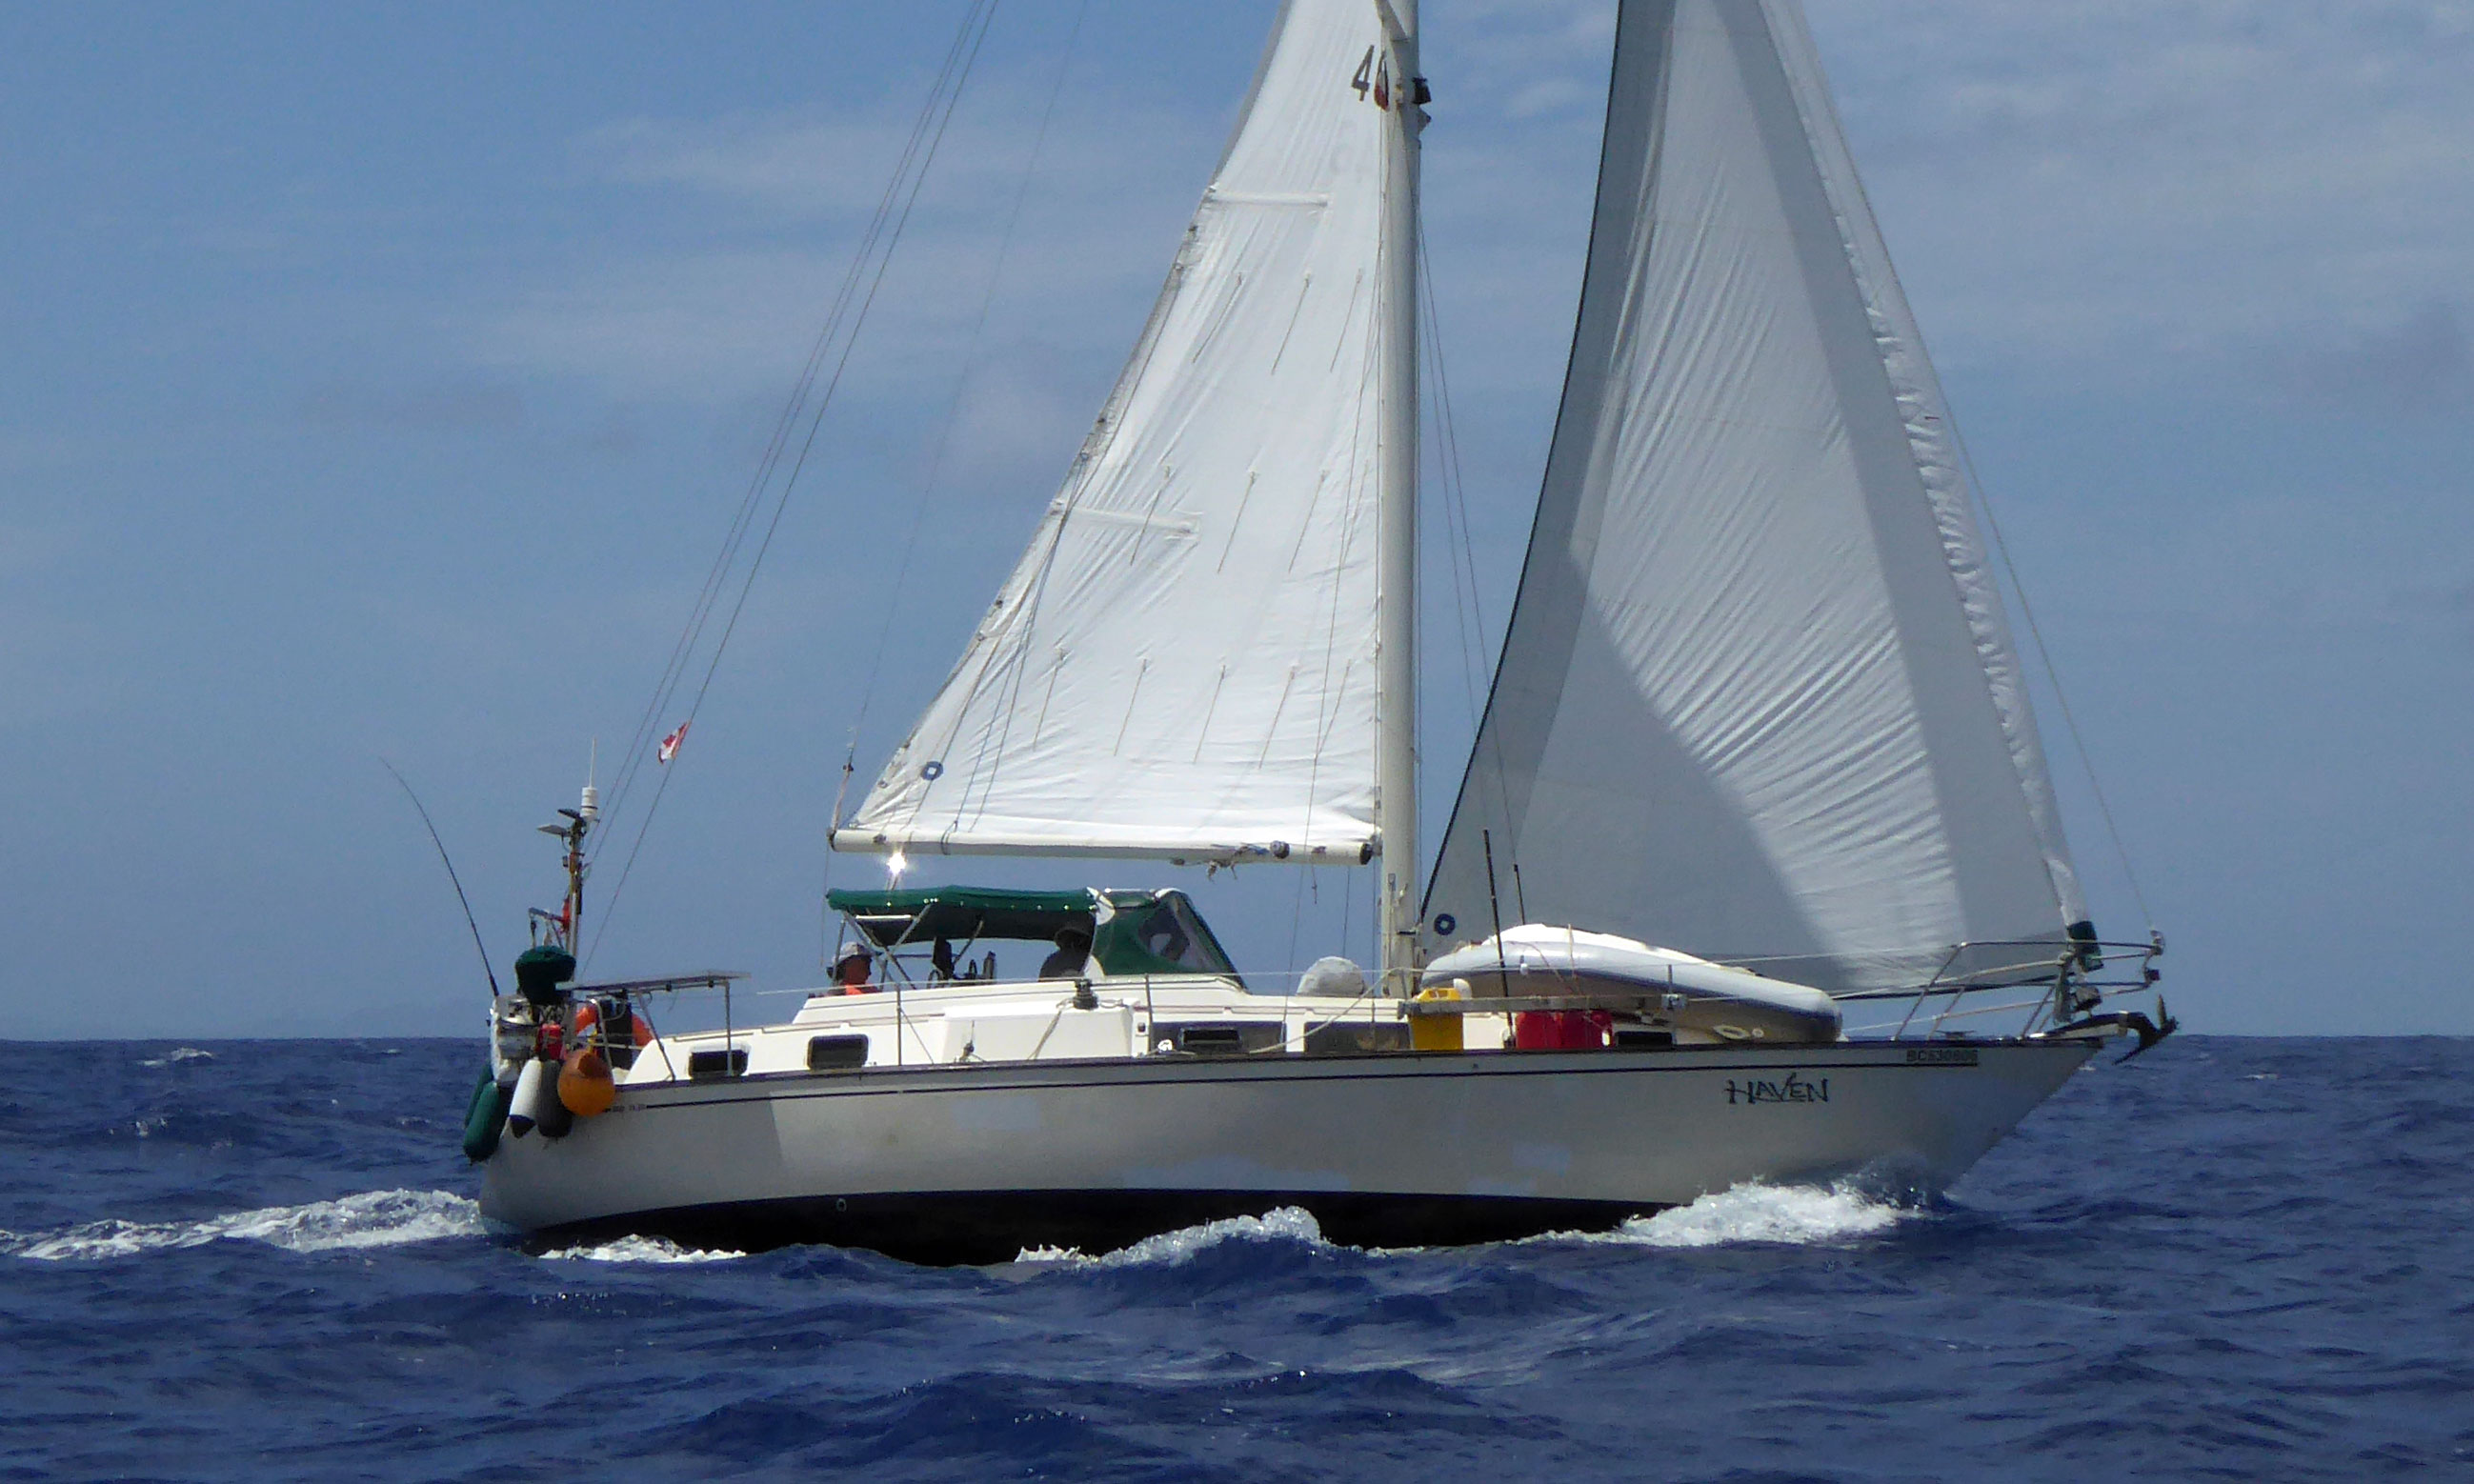 An S2 11.0 sailboat